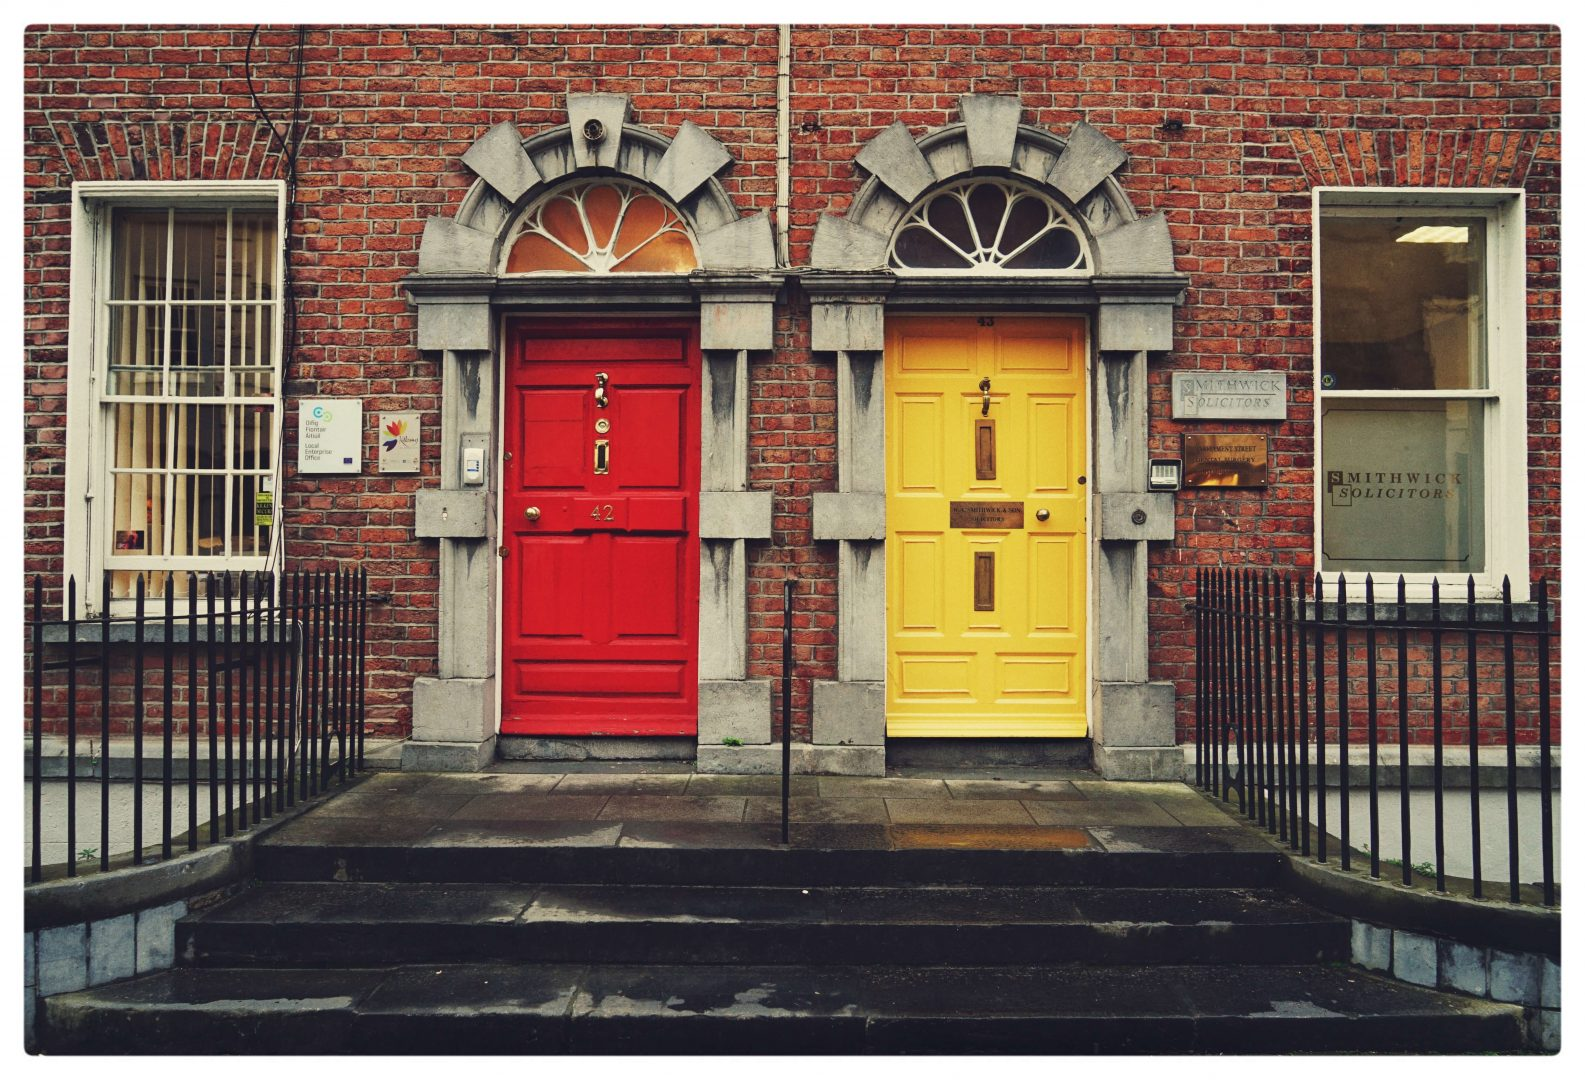 Red or yellow? A/B testing can help you decide.